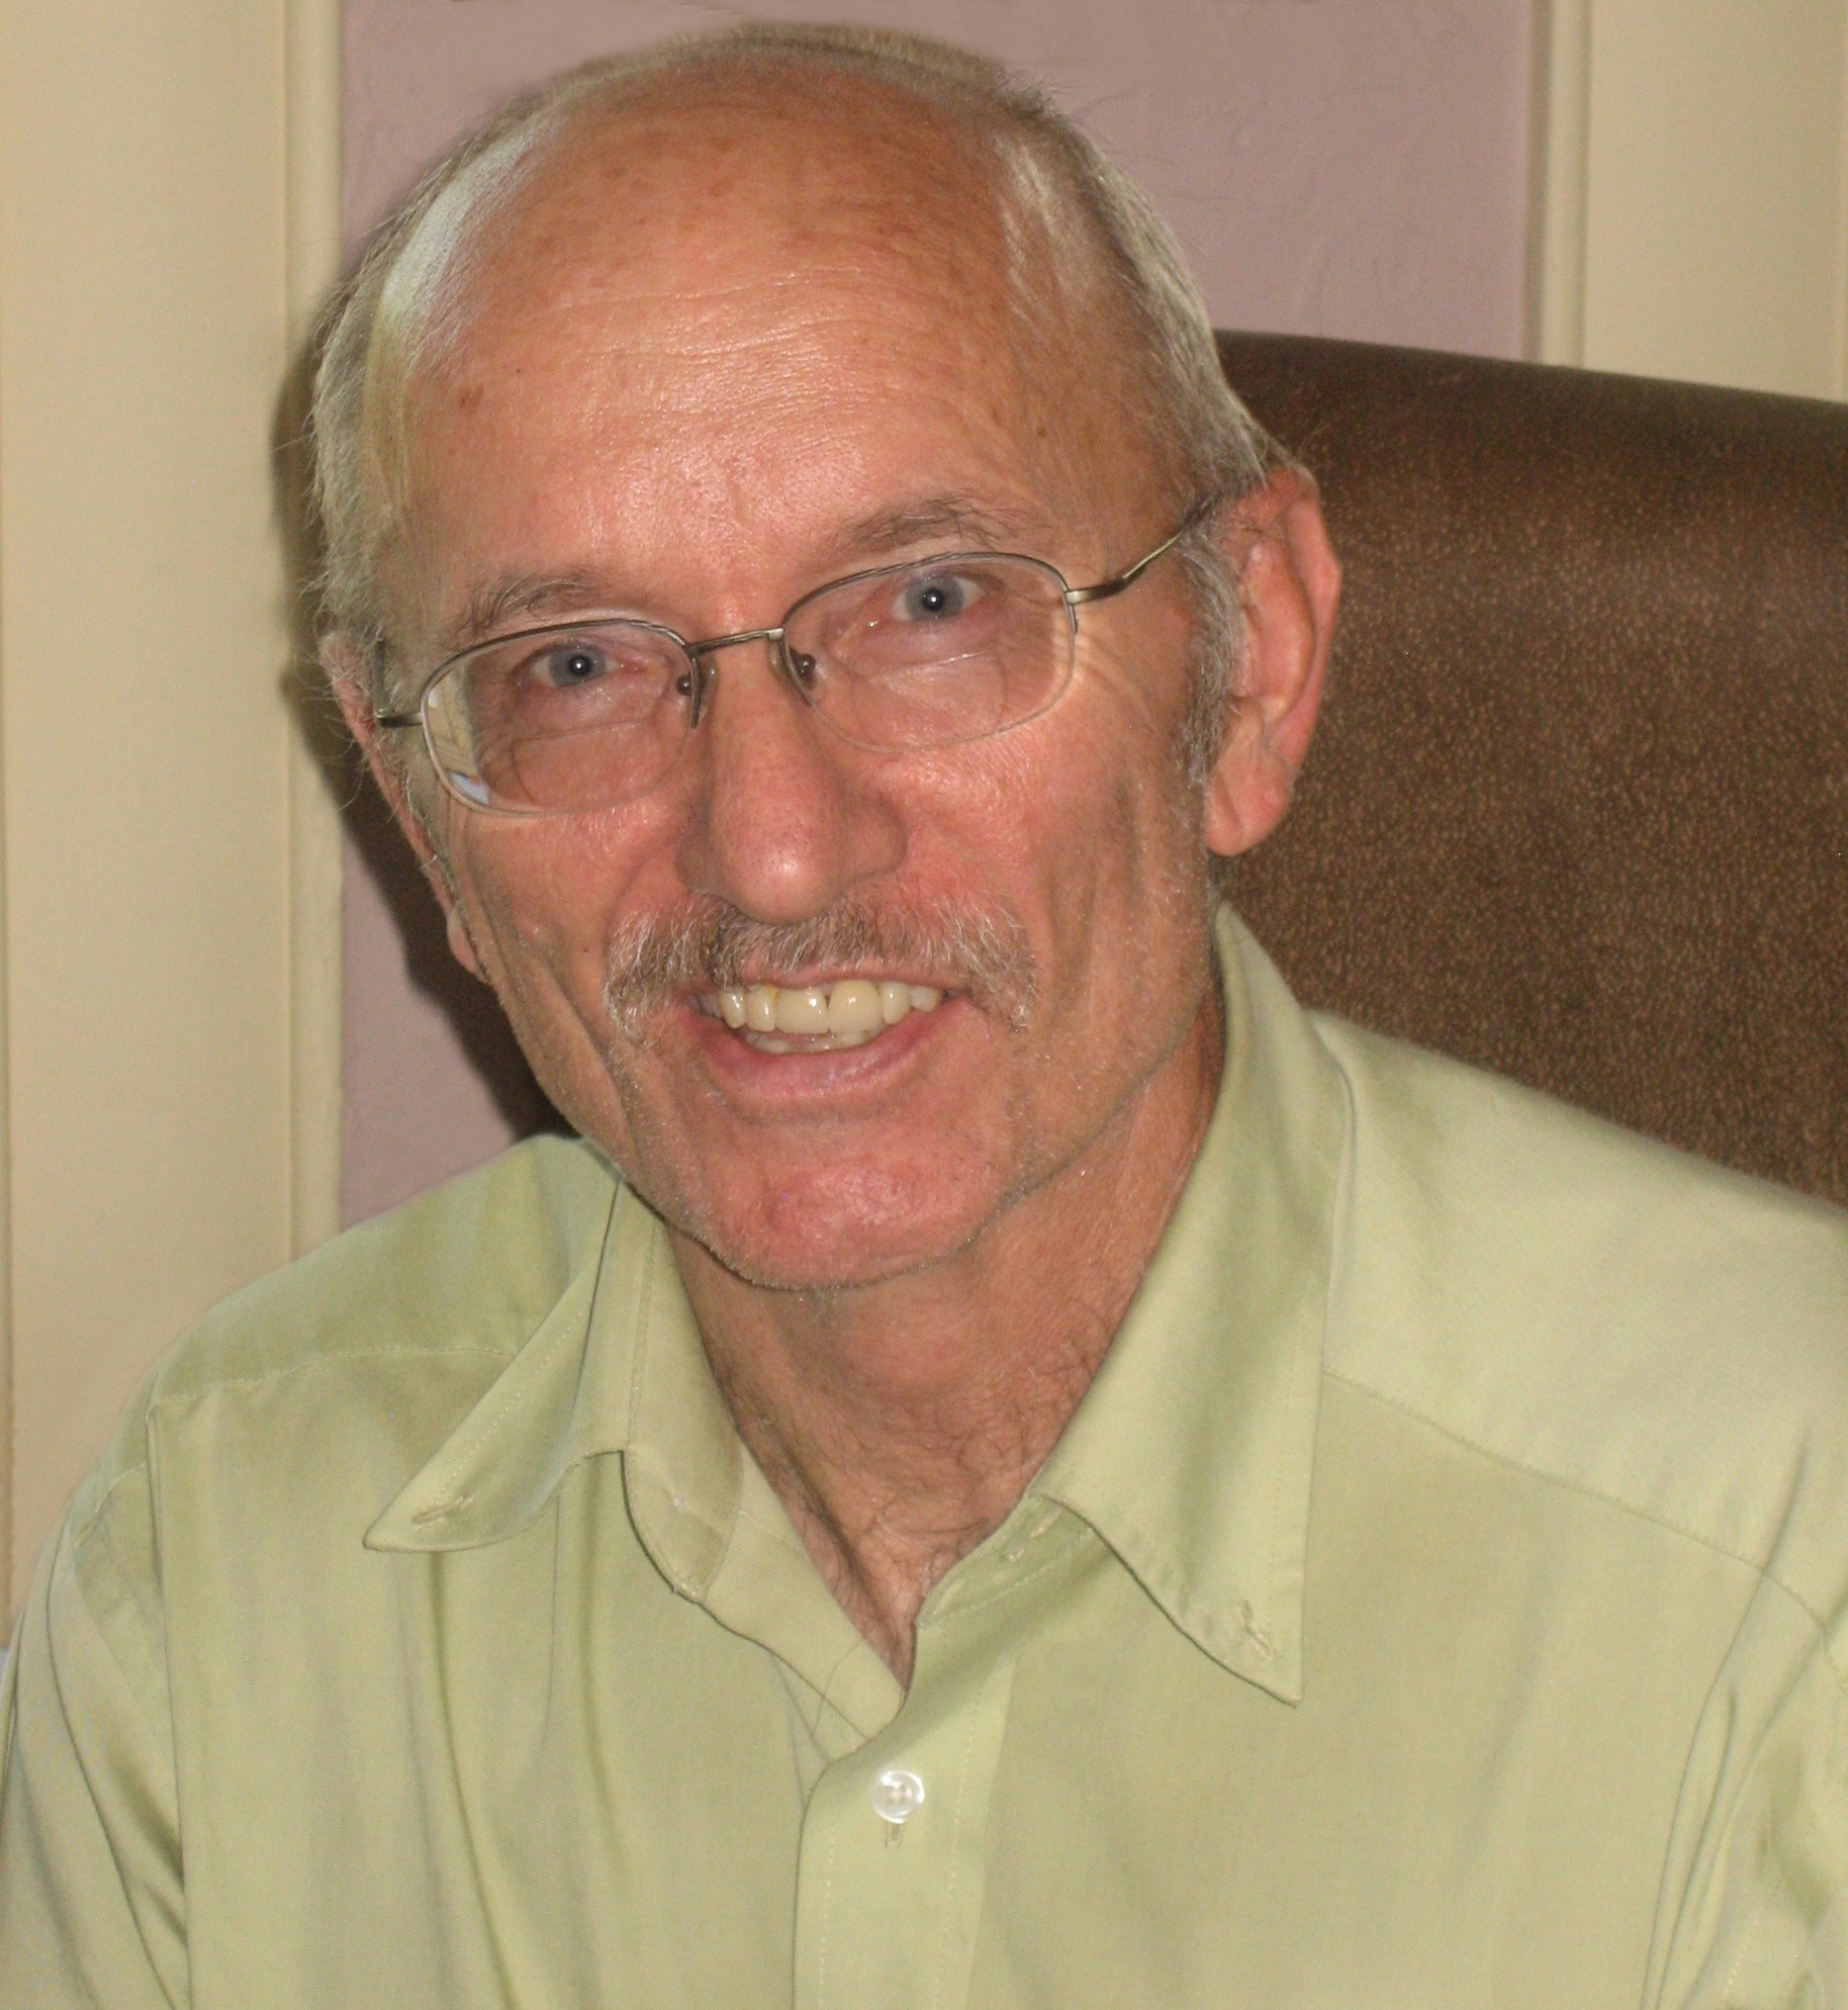 Bill Hale, Owner of Hale Pet Doors